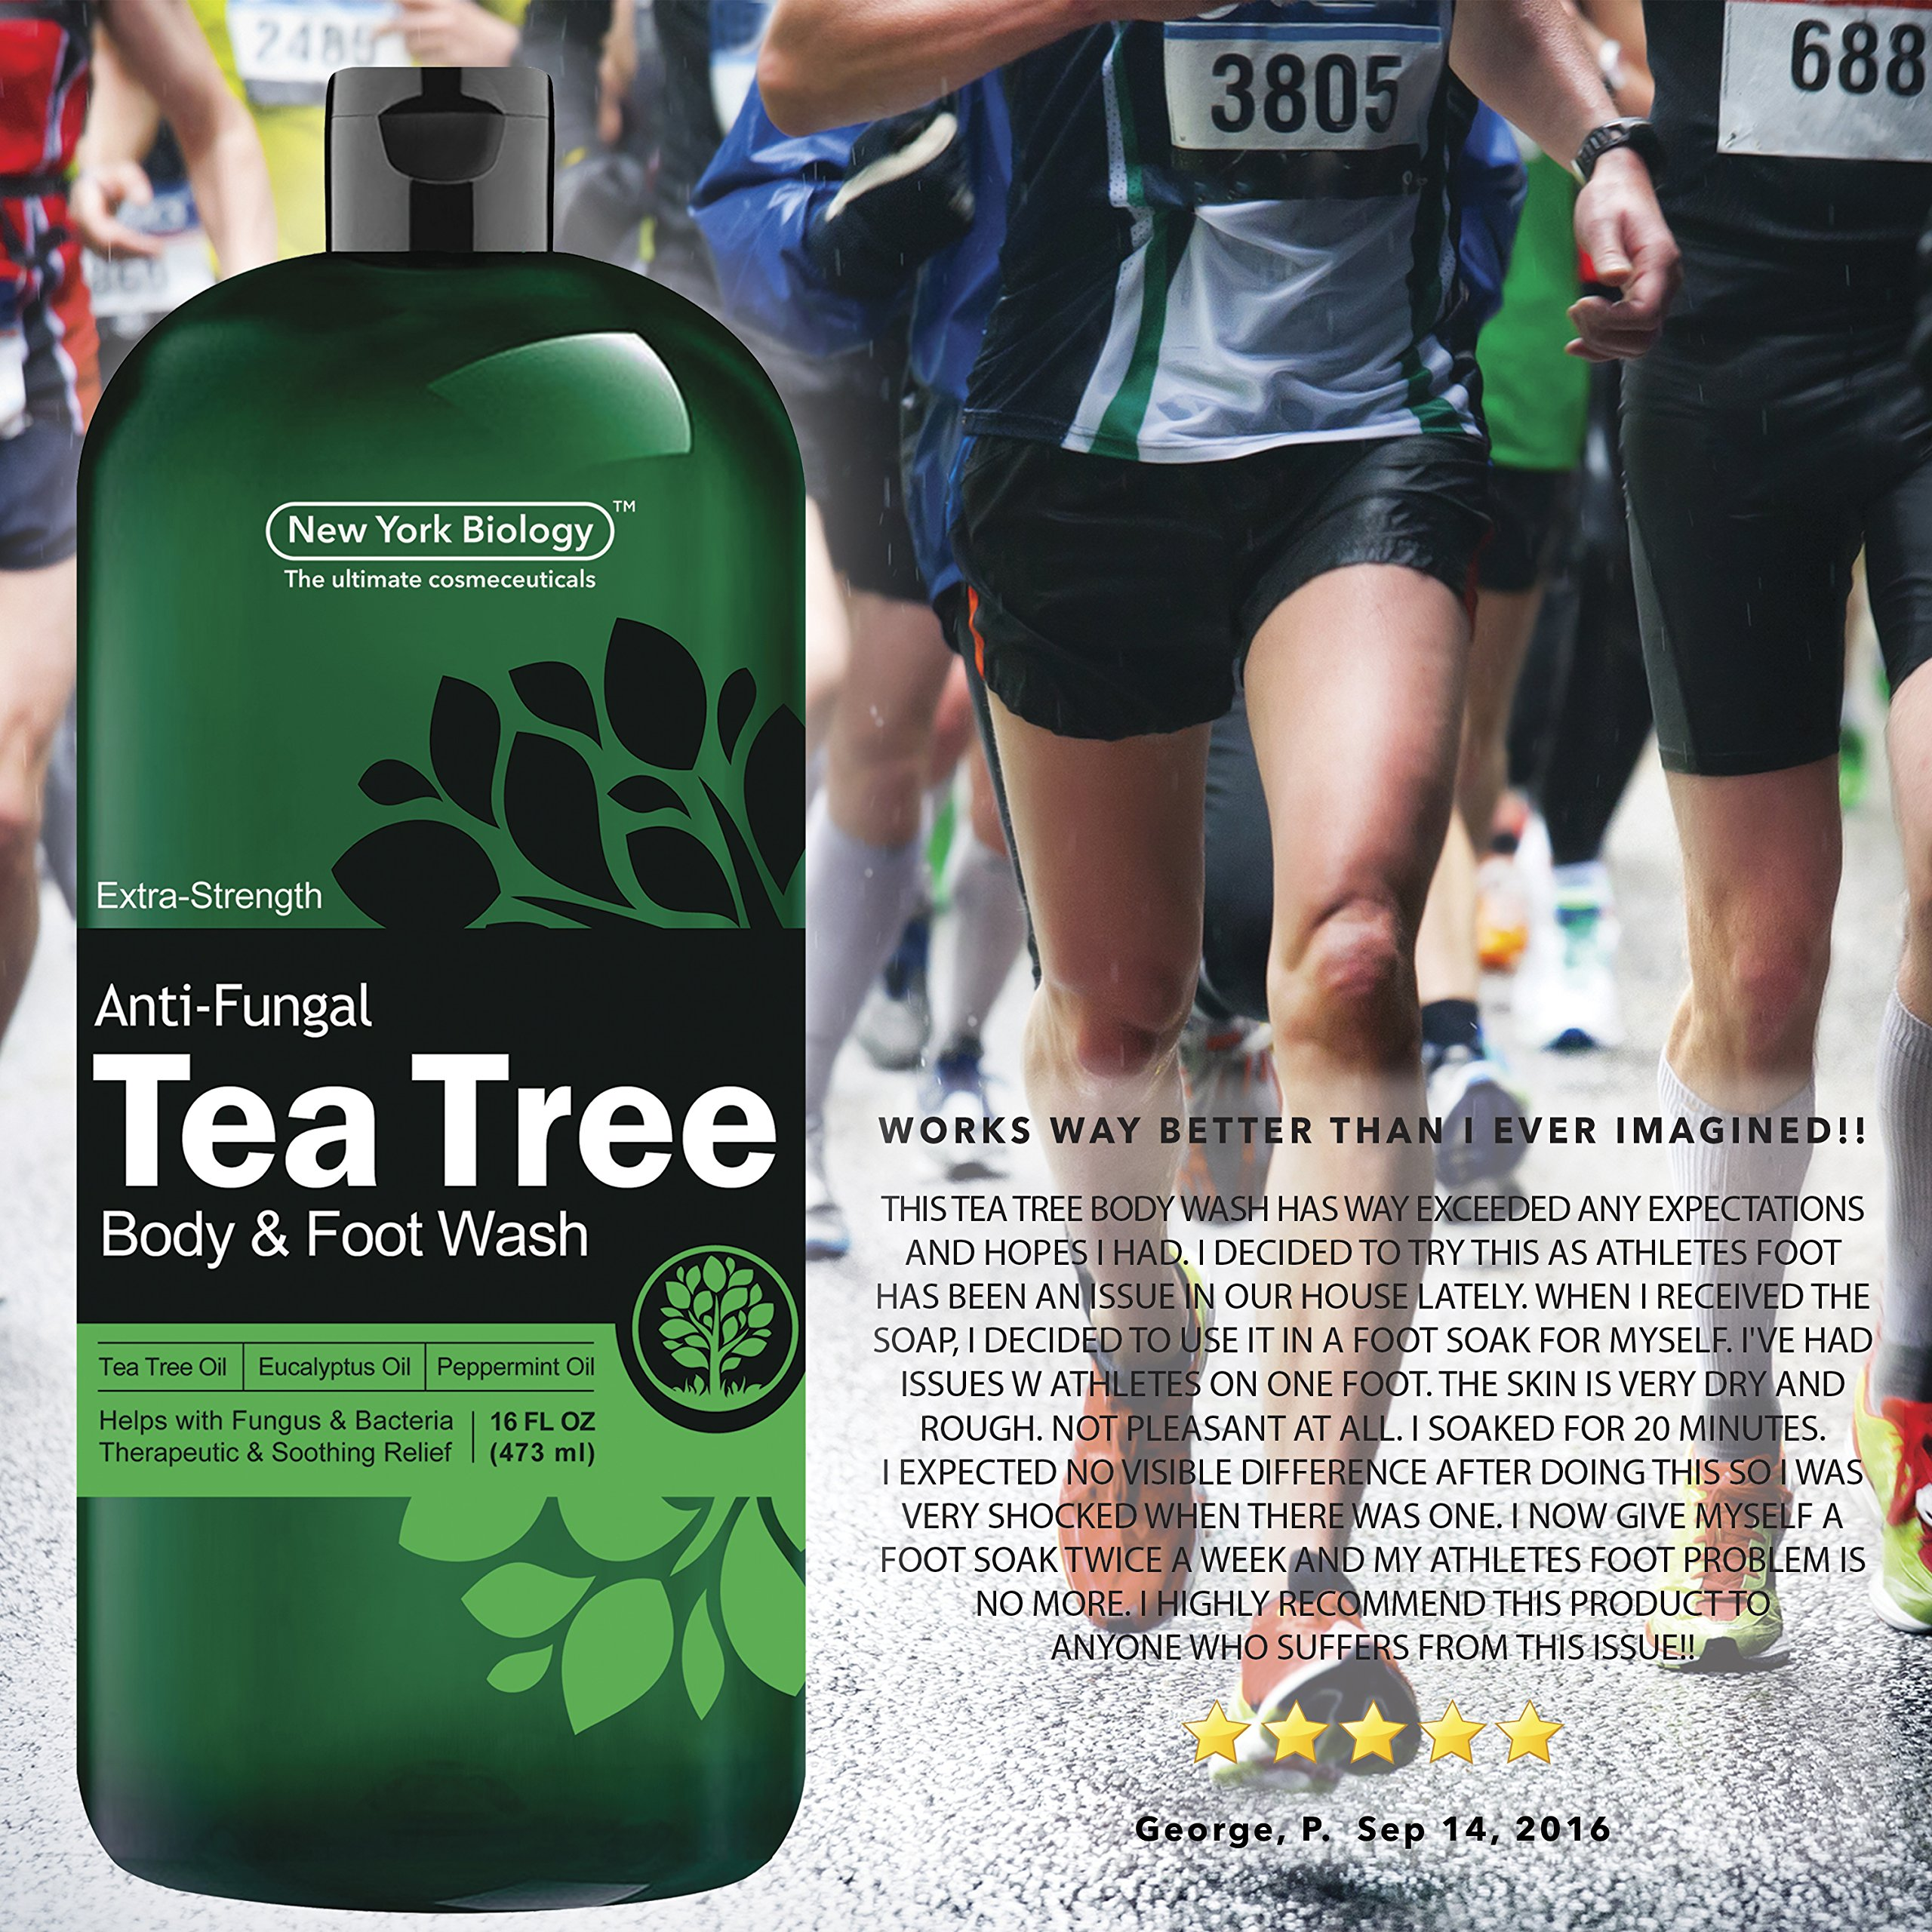 Antifungal Tea Tree Oil Body Wash – HUGE 16 OZ – 100% Pure & Natural - Extra Strength Professional Grade - Helps Soothe Toenail Fungus, Athlete Foot, Body Itch, Jock Itch & Eczema by New York Biology (Image #5)